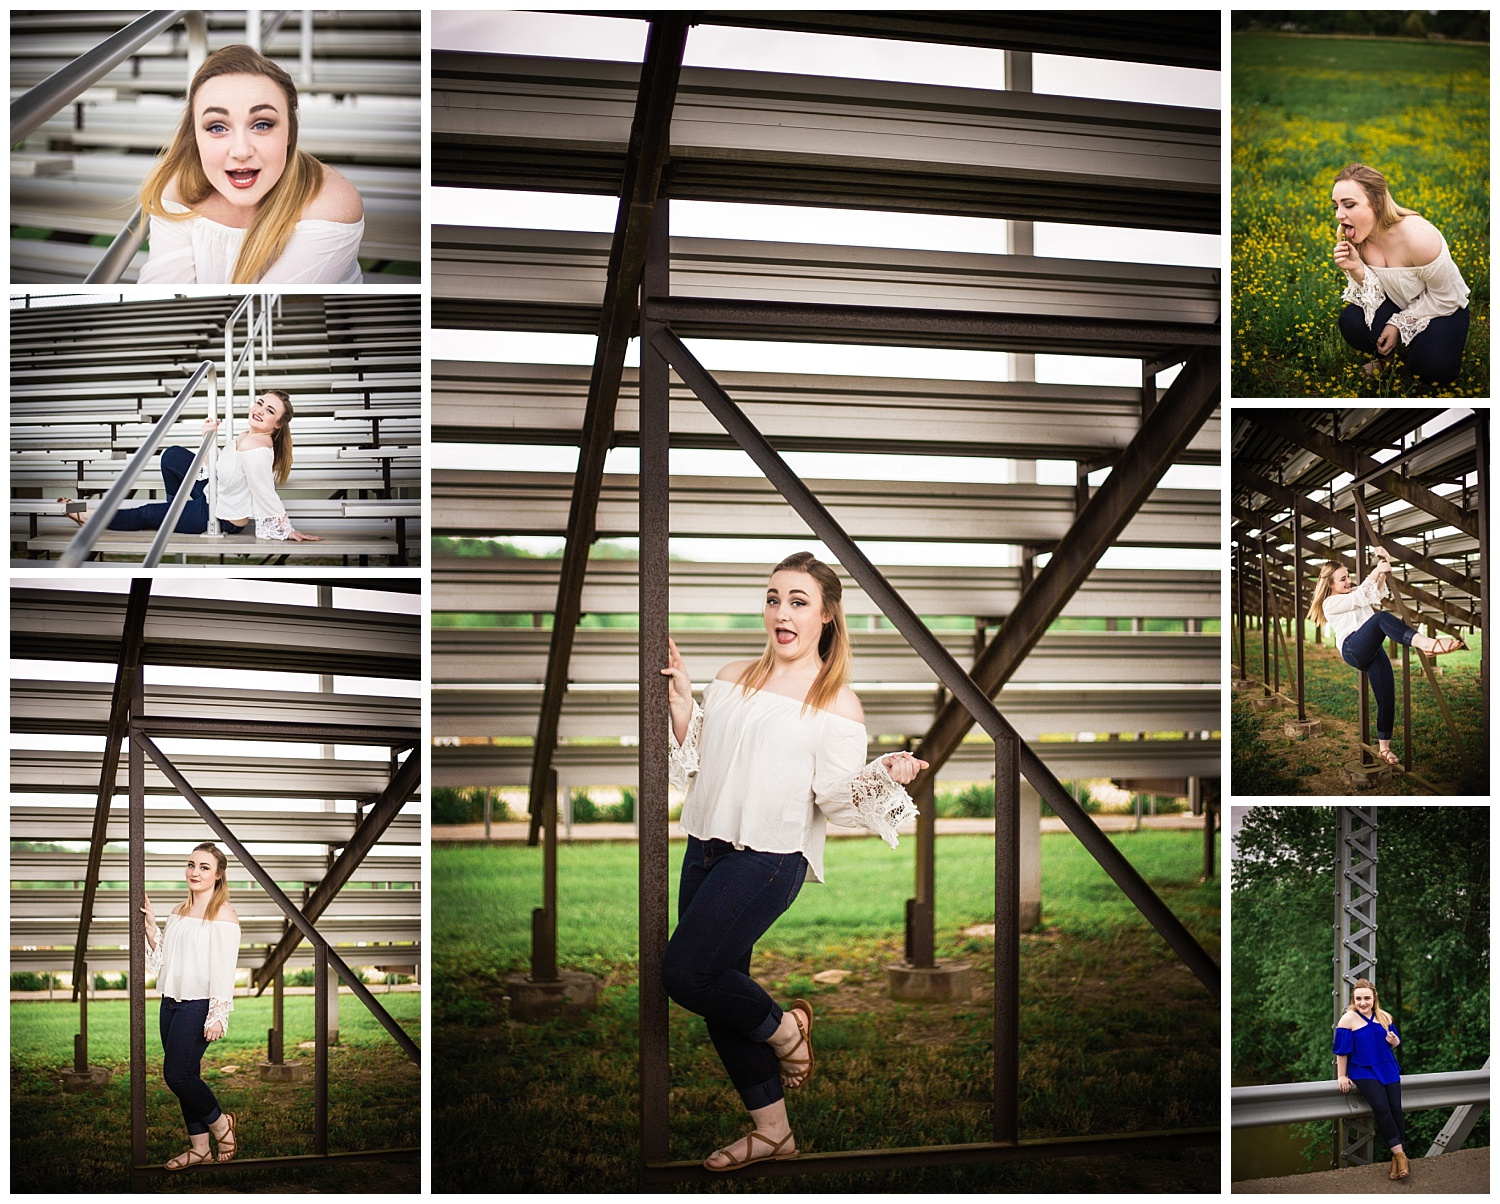 - Check out some of these hilarious bloopers from Paige's Session!